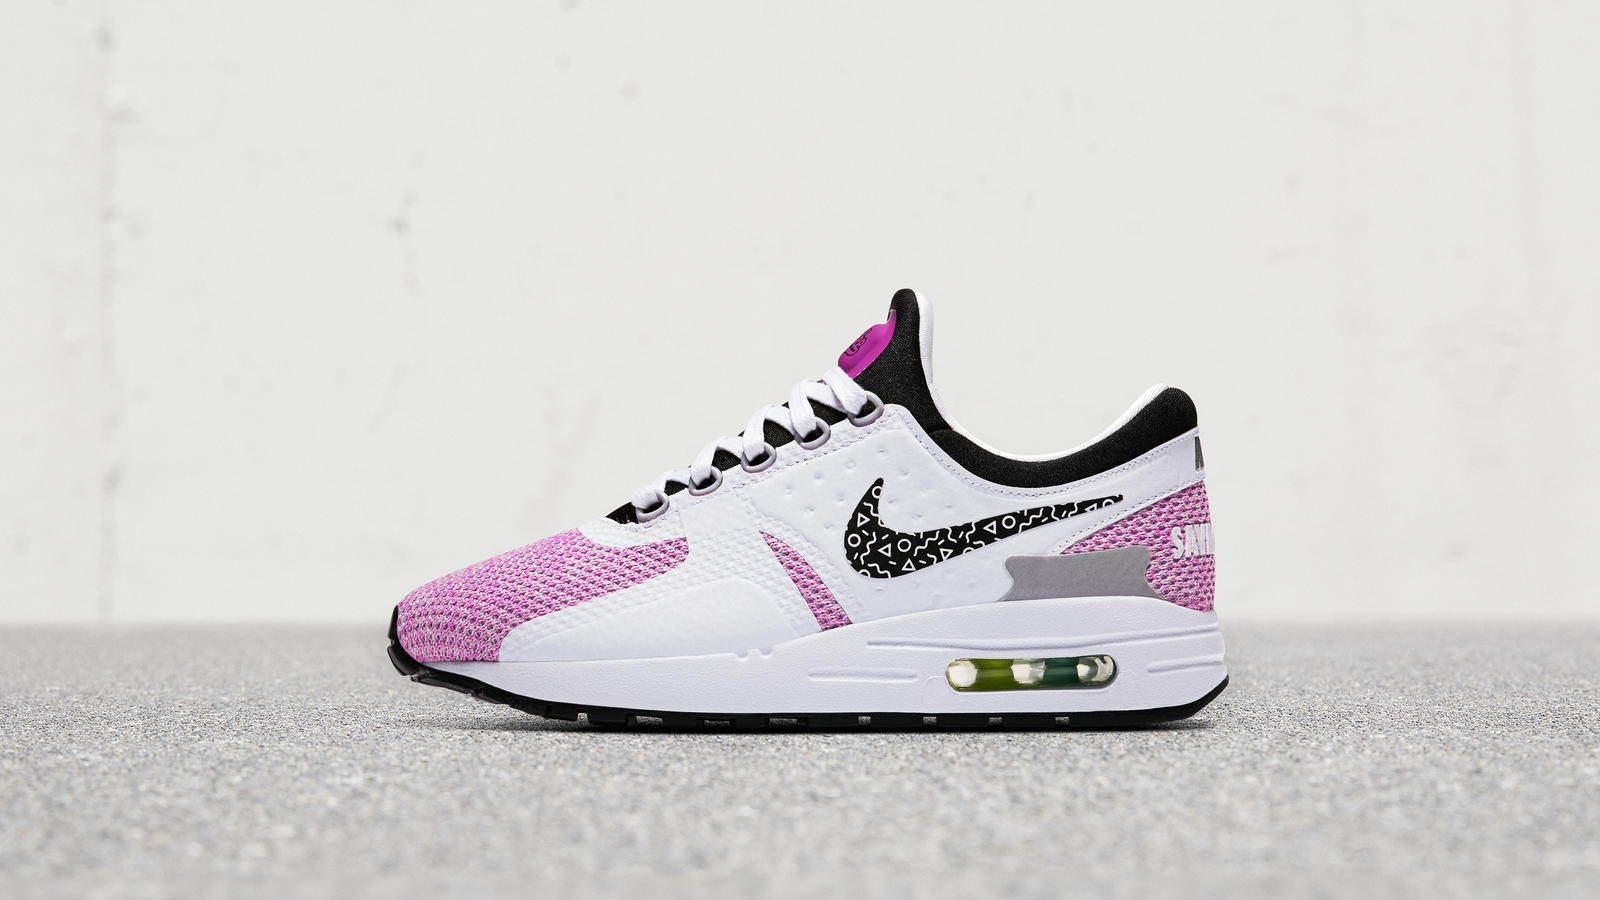 buy popular bad8f 31e69 Mademoiselle Gloria s Nike Air Max Zero is available January 20 in grade  school sizes on nike.com in Europe.